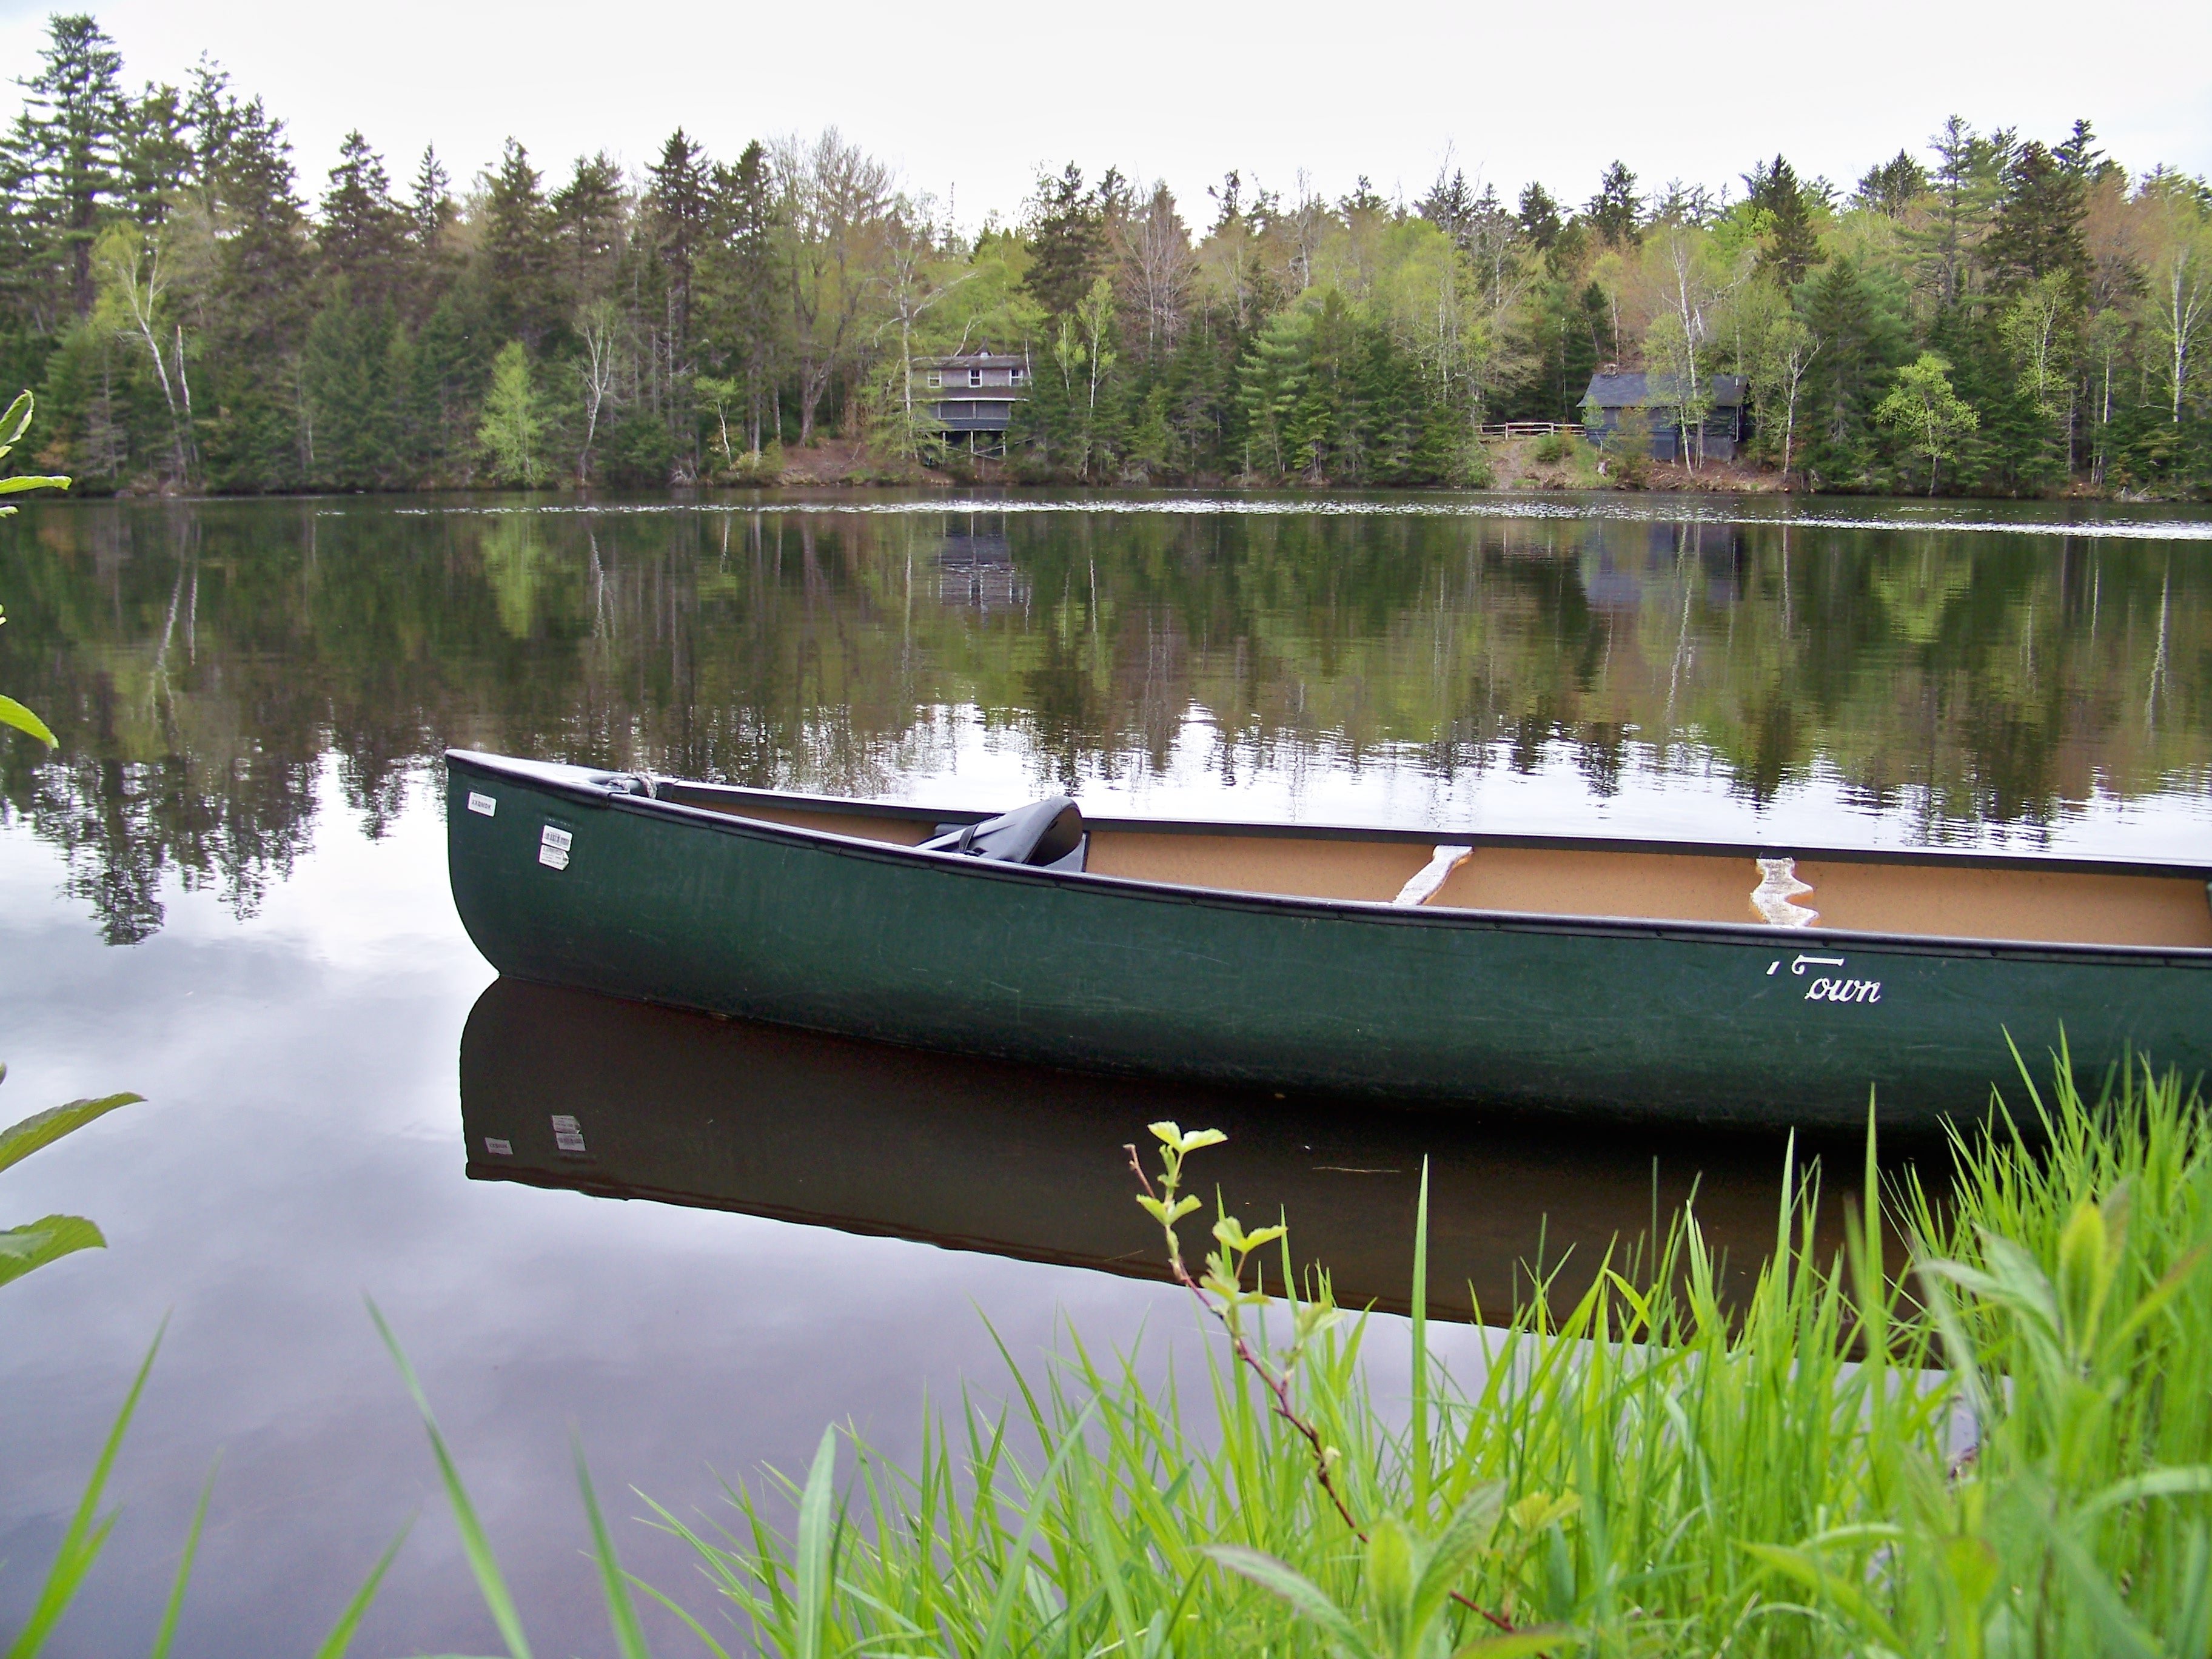 Canoe on the pond